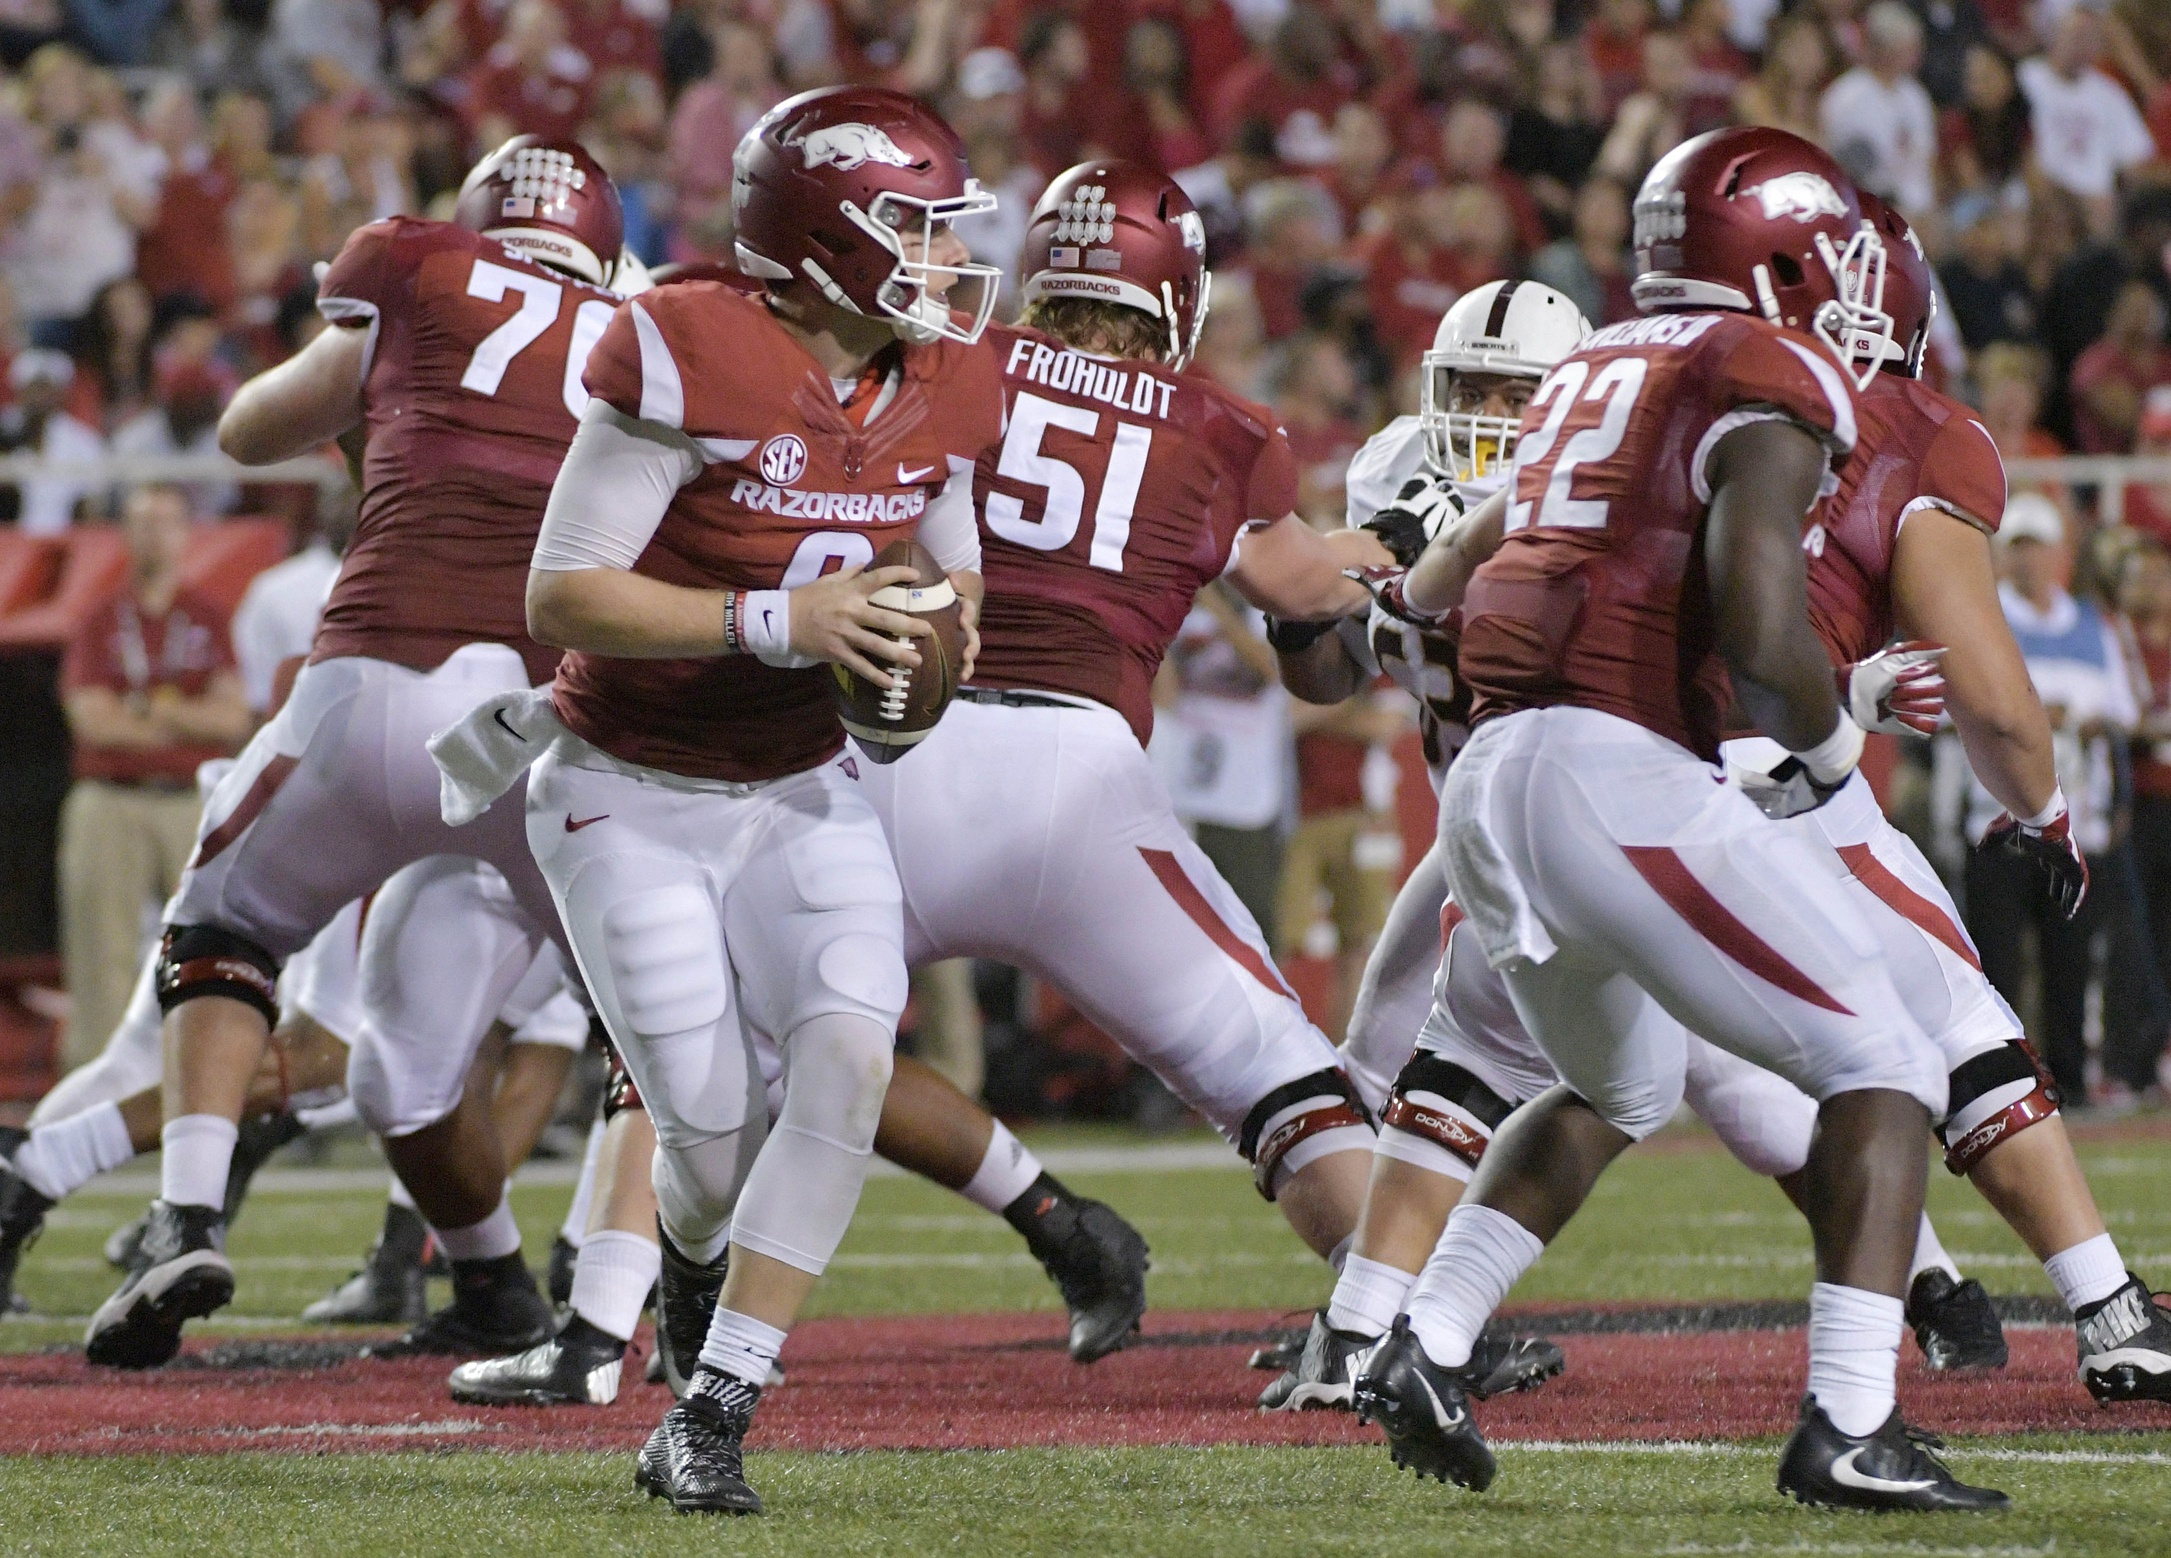 Sep 17, 2016; Fayetteville, AR, USA; Arkansas Razorbacks quarterback Austin Allen (8) prepares to throw the ball during the first half against the Texas State Bobcats at Donald W. Reynolds Razorback Stadium. Mandatory Credit: Denny Medley-USA TODAY Sports